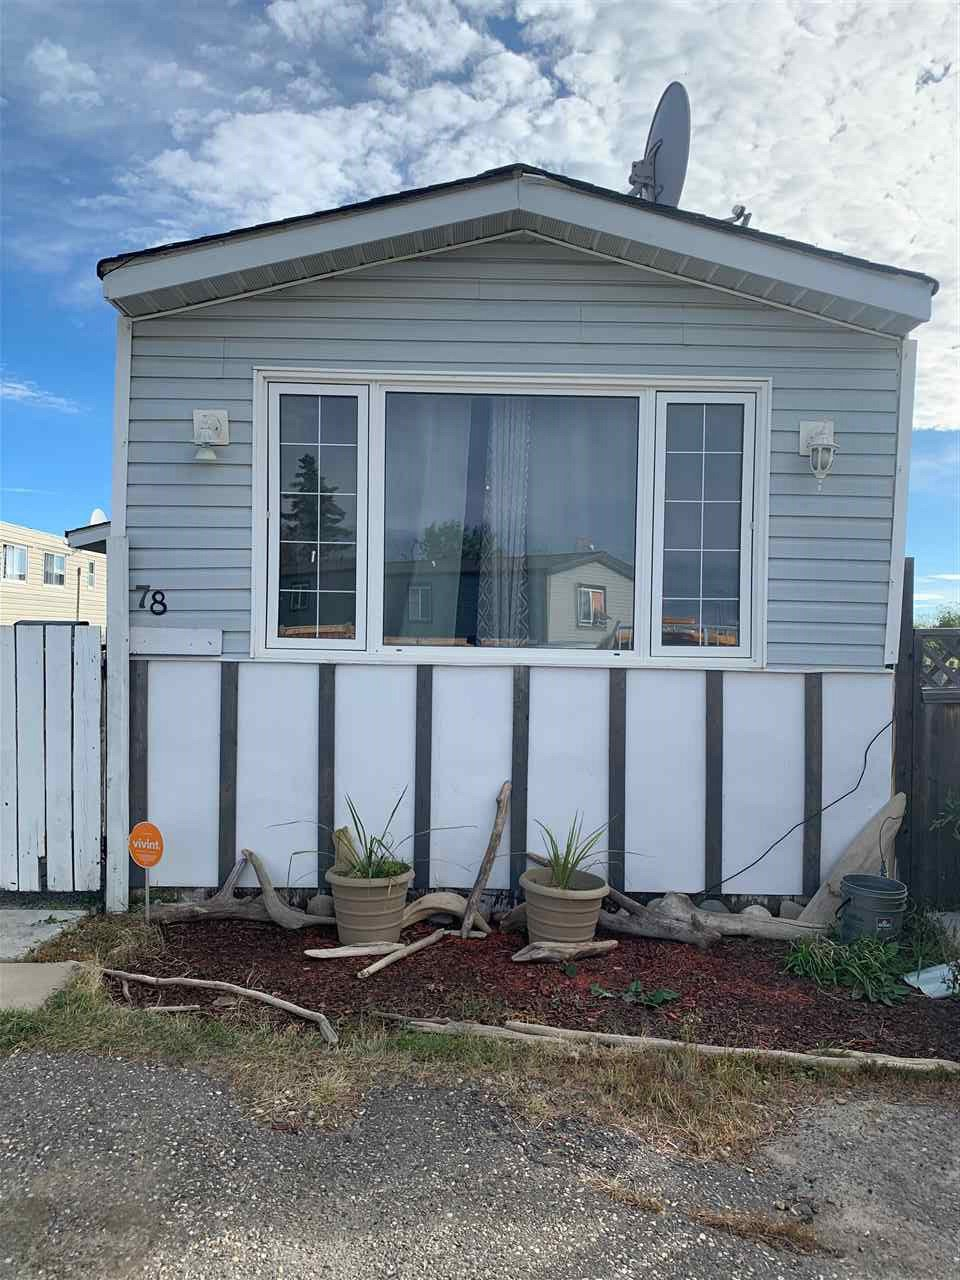 "Main Photo: 78 8420 ALASKA Road in Fort St. John: Fort St. John - City SE Manufactured Home for sale in ""PEACE COUNTRY"" (Fort St. John (Zone 60))  : MLS®# R2495486"